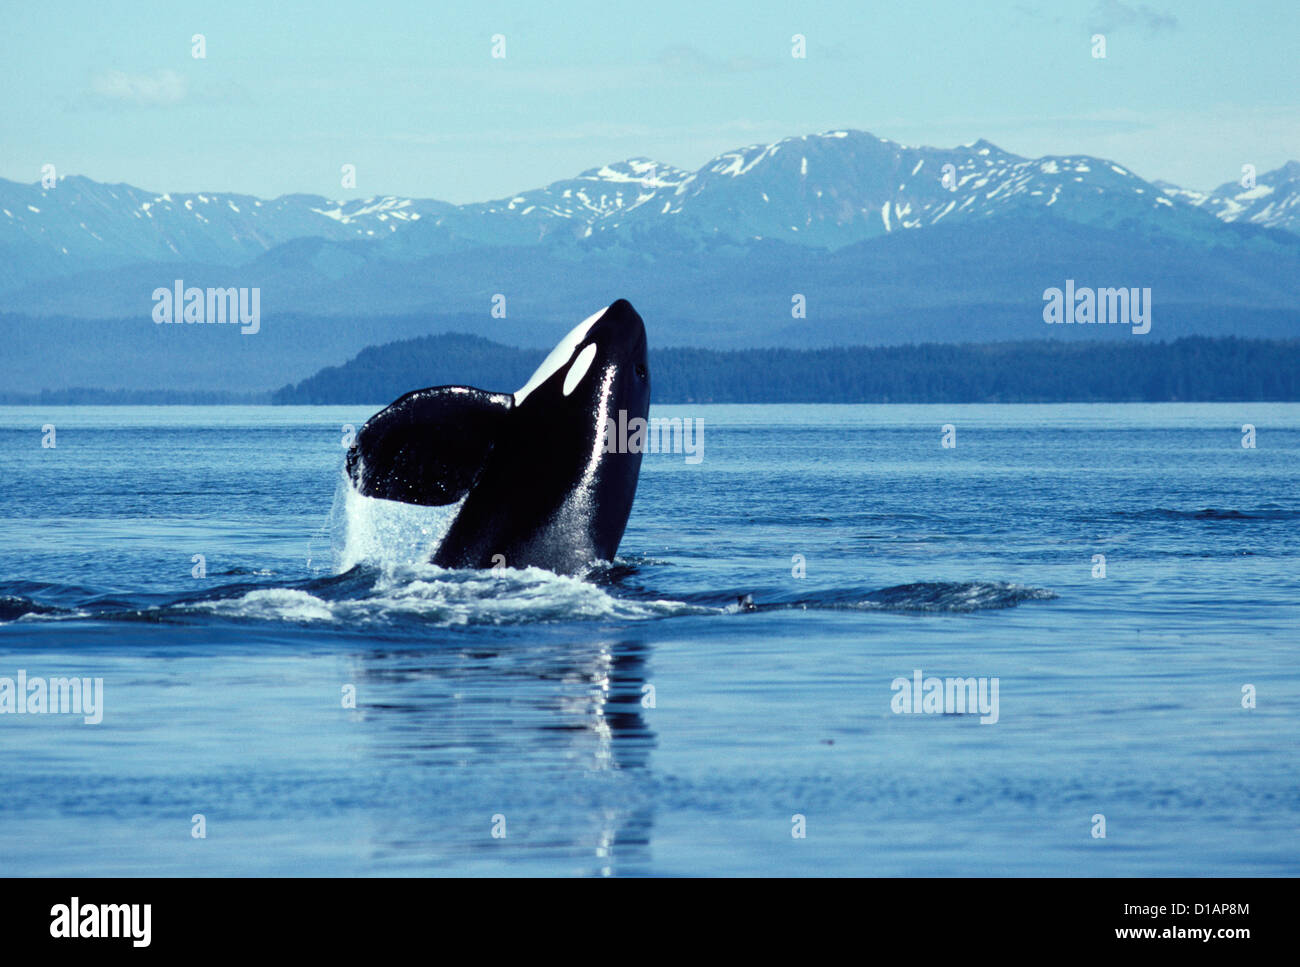 Killer whale; Orca.Orcinus orca.Male, breaching.Photographed in Icy Strait, Southeast Alaska. - Stock Image